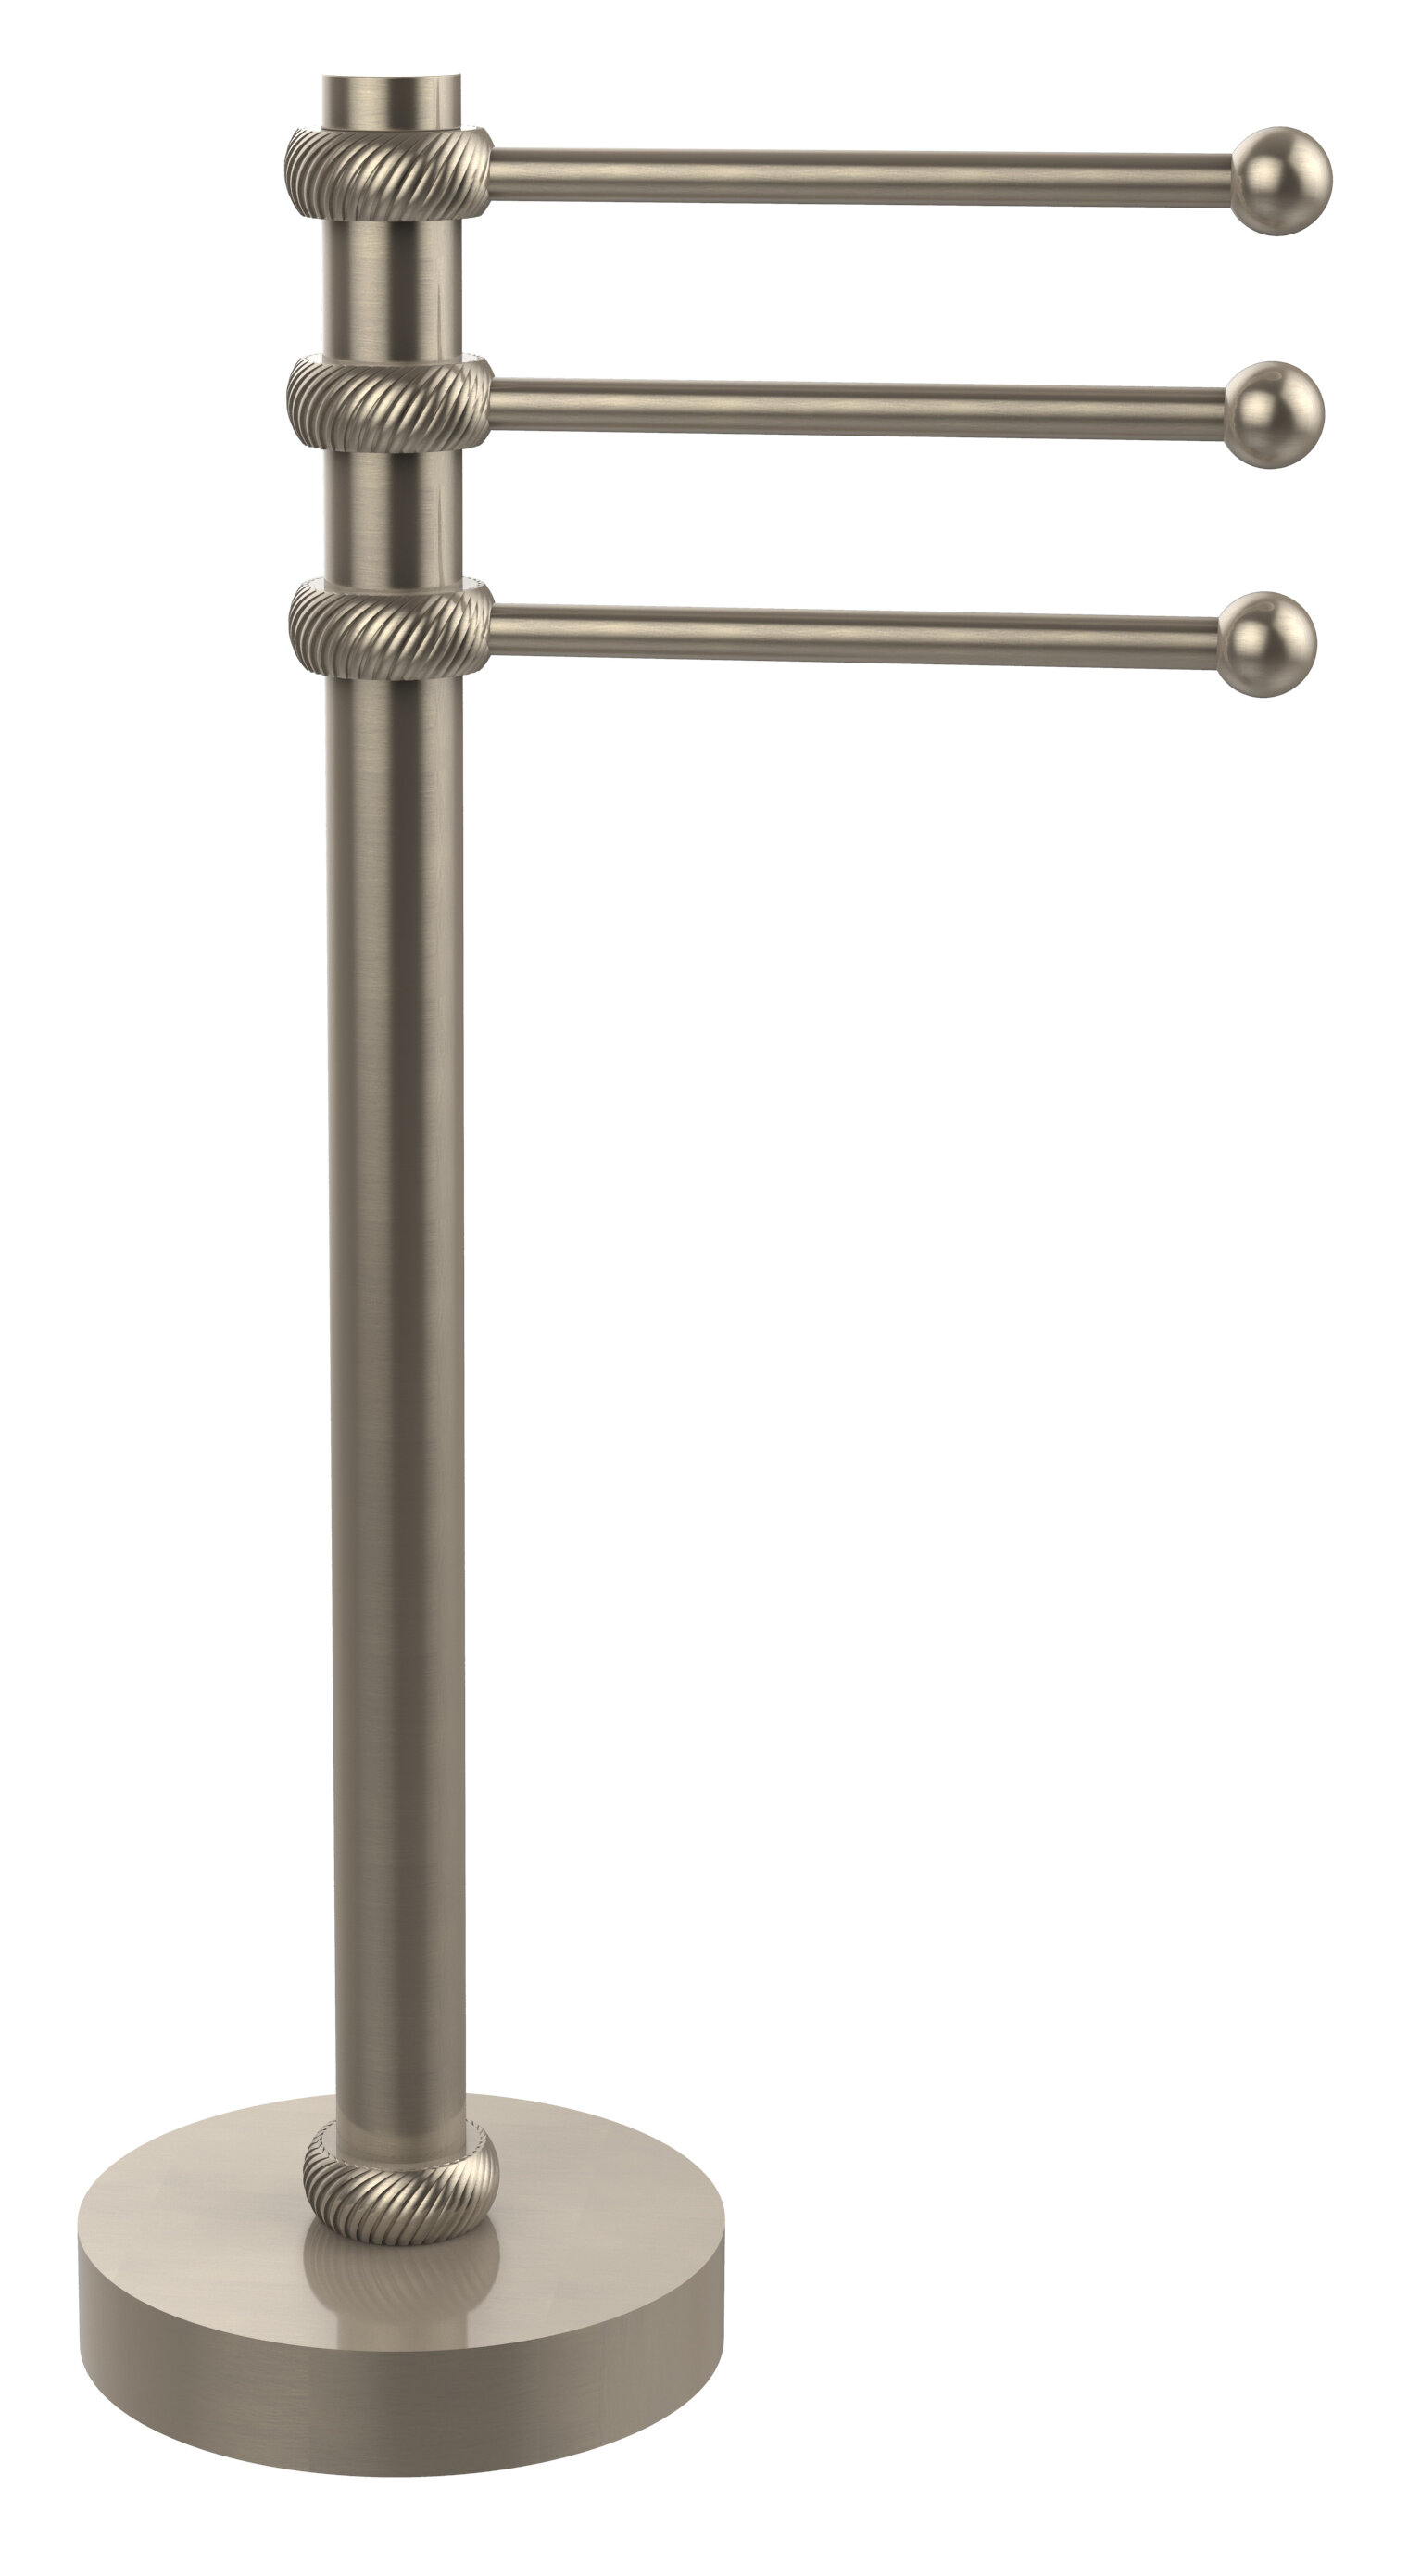 973t Pew 3 Swing Arm Countertop Towel Stand